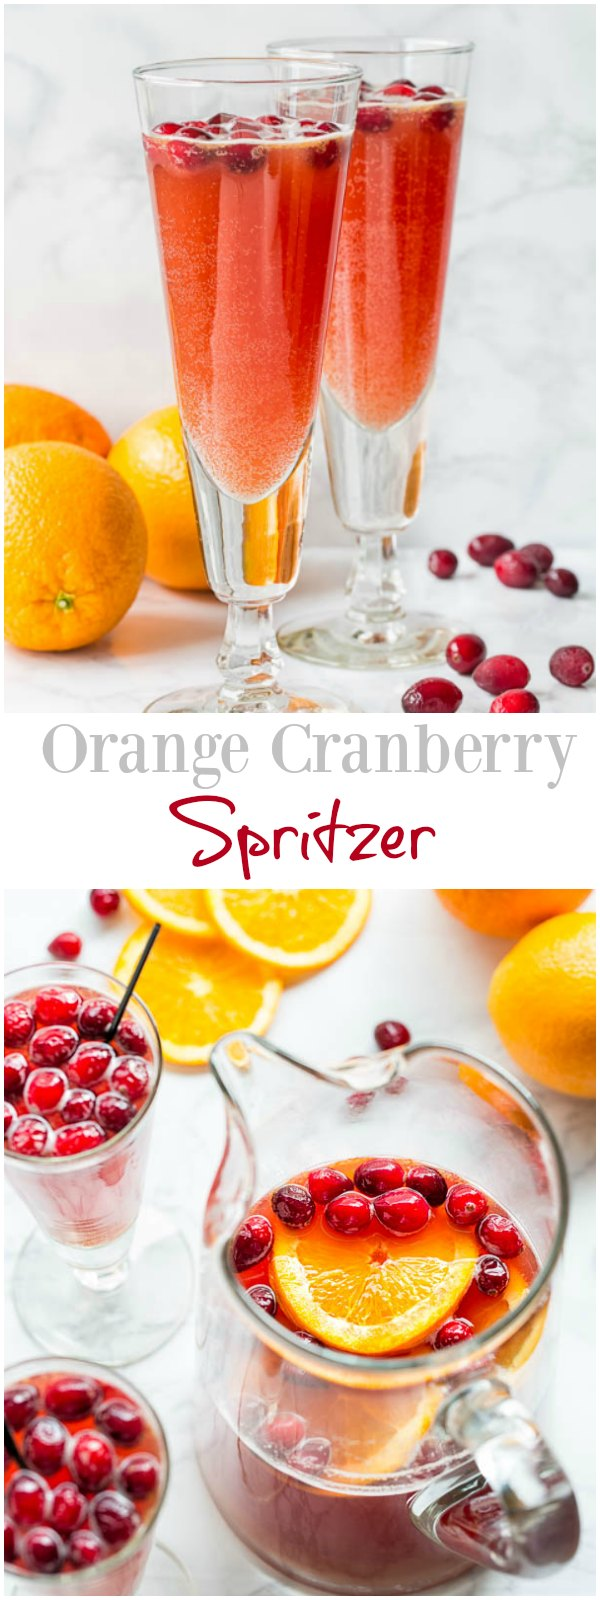 Orange Cranberry Spritzer - deliciously refreshing mocktail with Schweppes® Ginger Ale that's just as fancy as any cocktail.